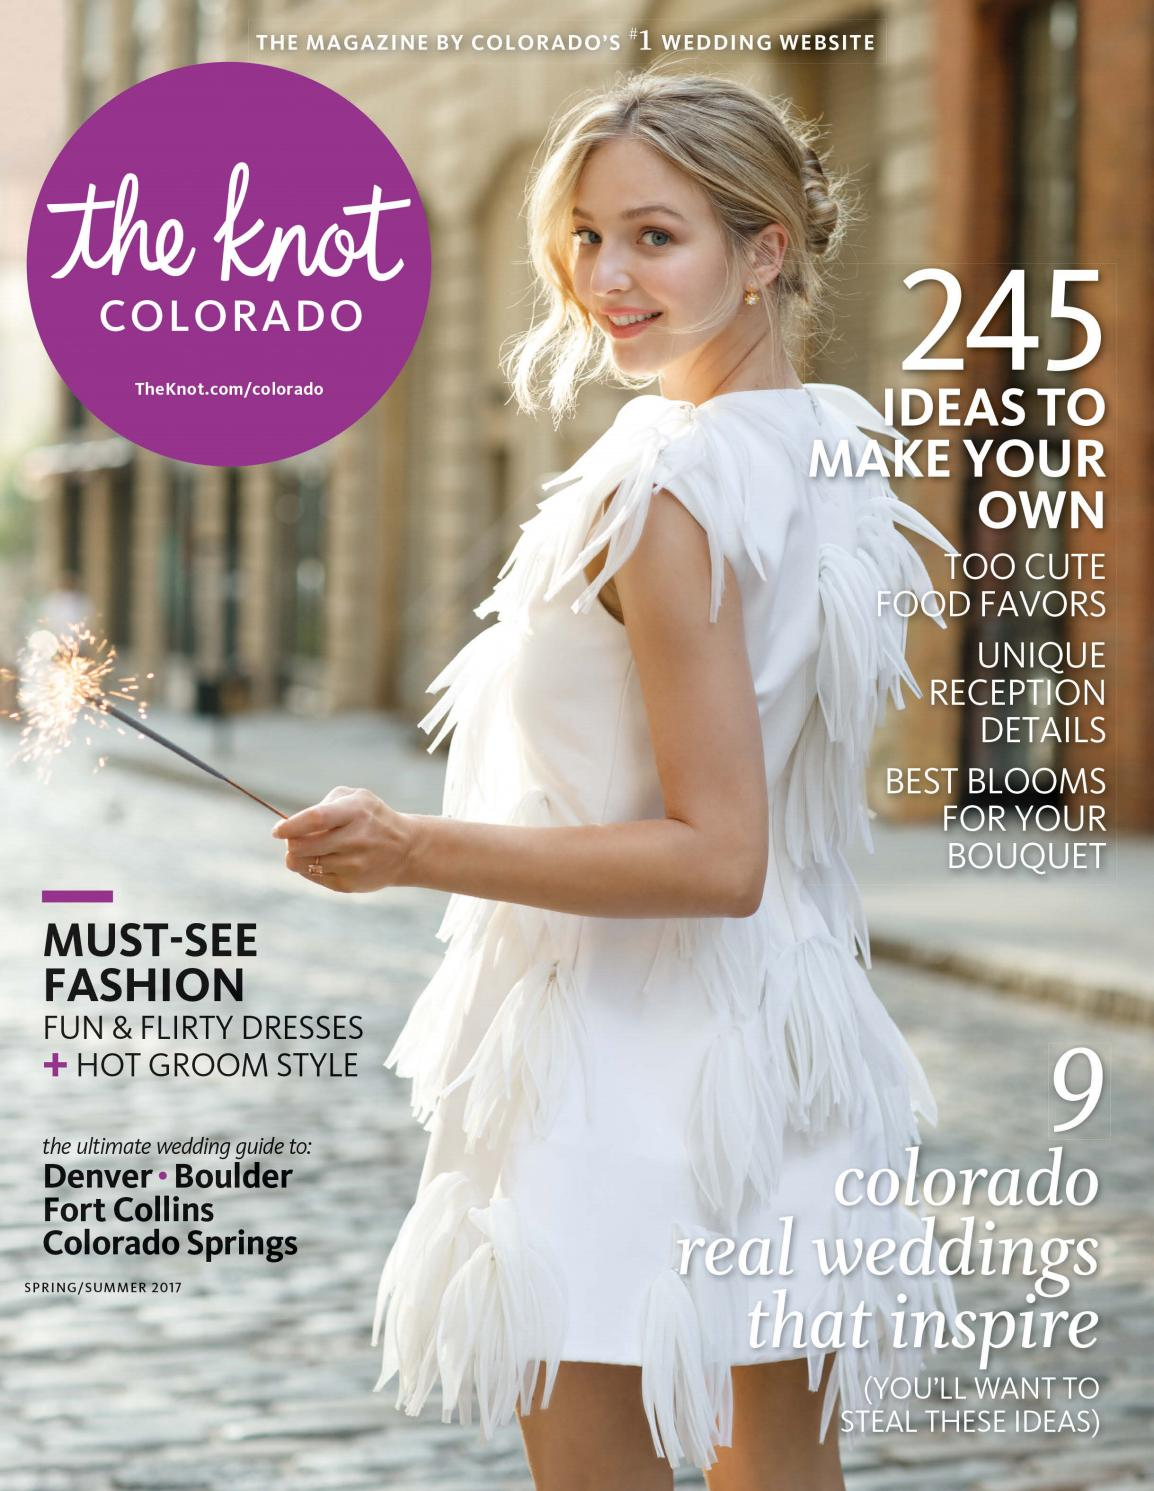 The Knot Colorado Spring Summer 2017 by The Knot Colorado - issuu 31b57fe78a41d